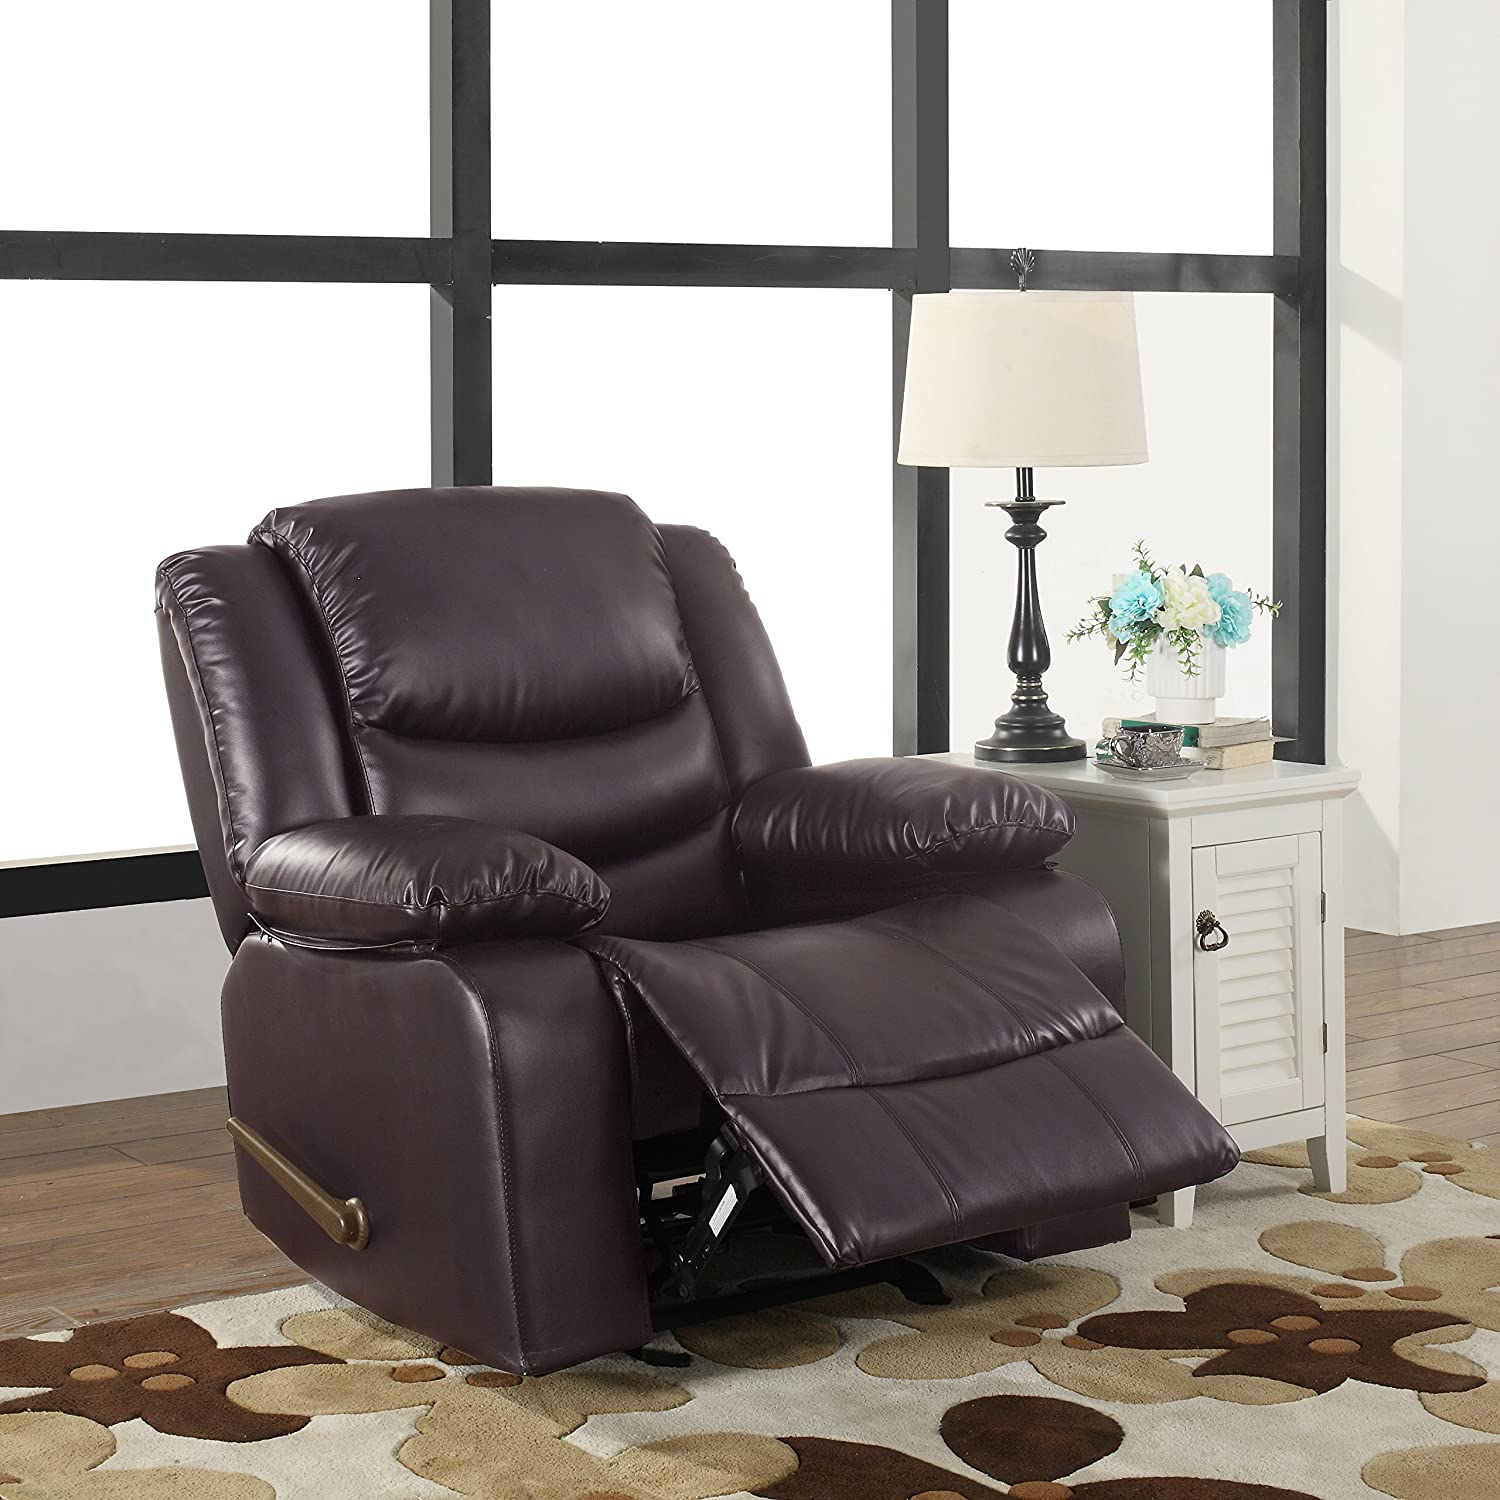 Amazon Bonded Leather Rocker Recliner Living Room Chair